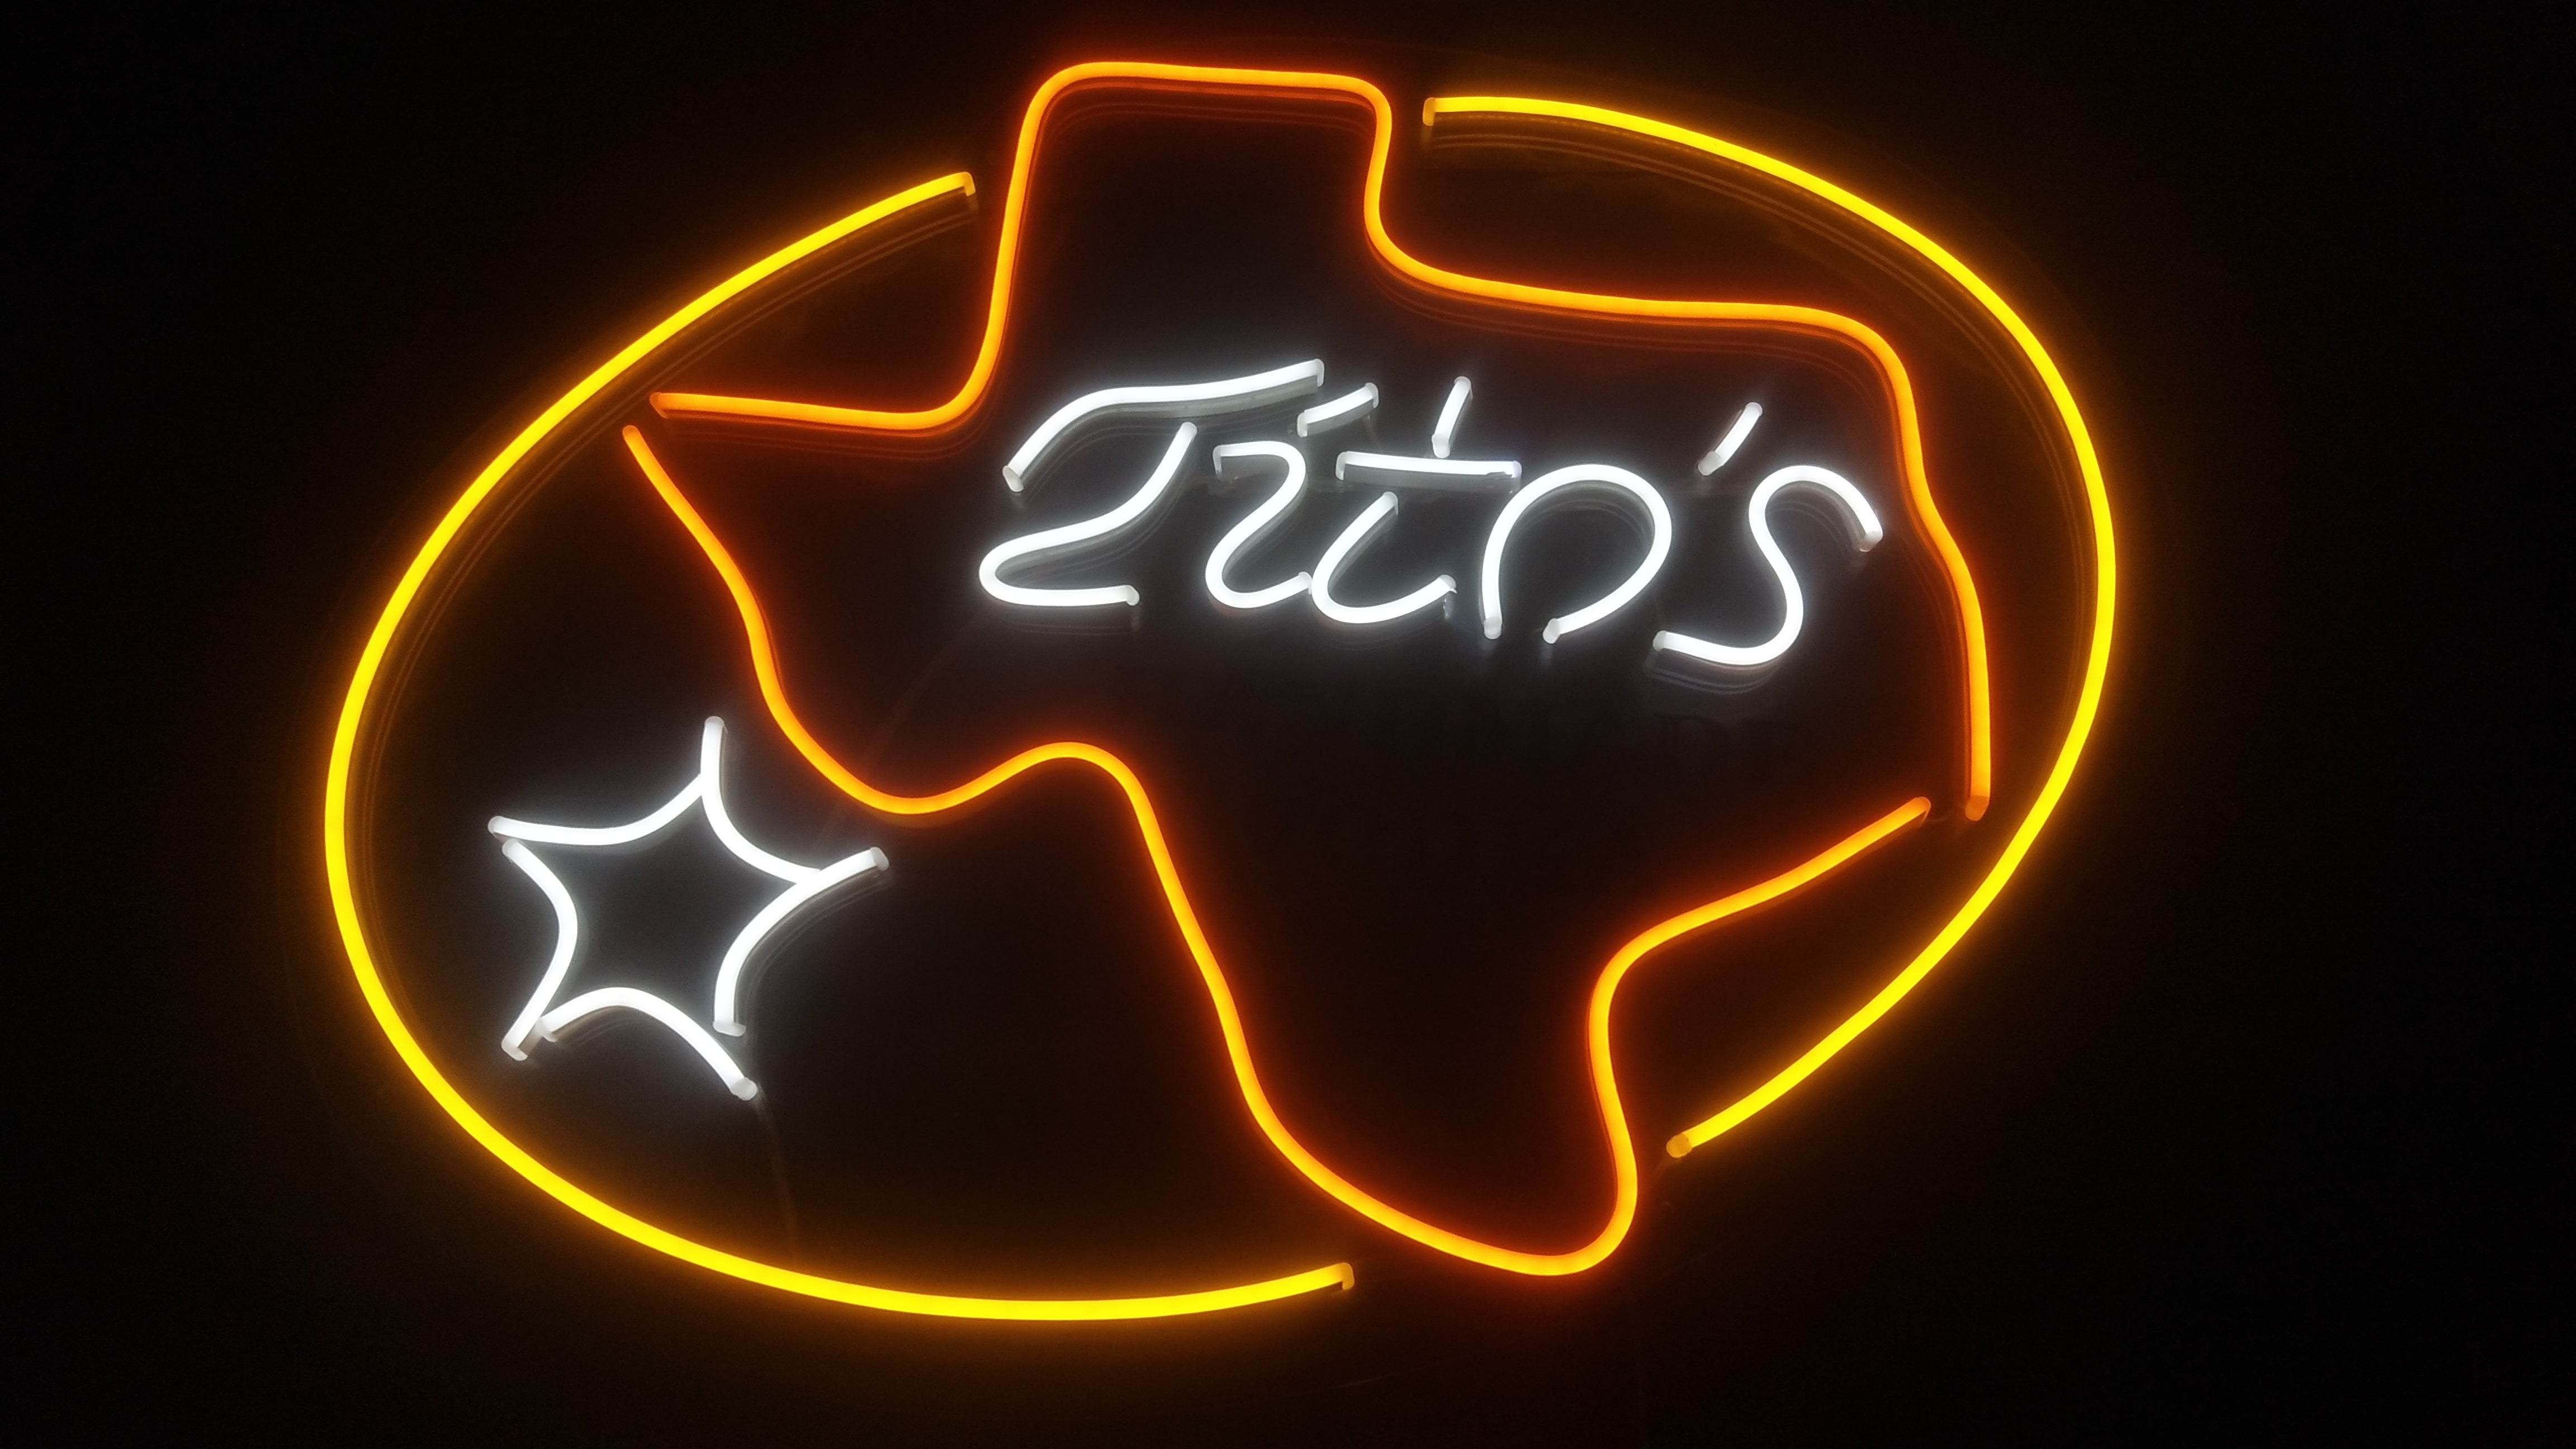 Tito's sign made with neon led